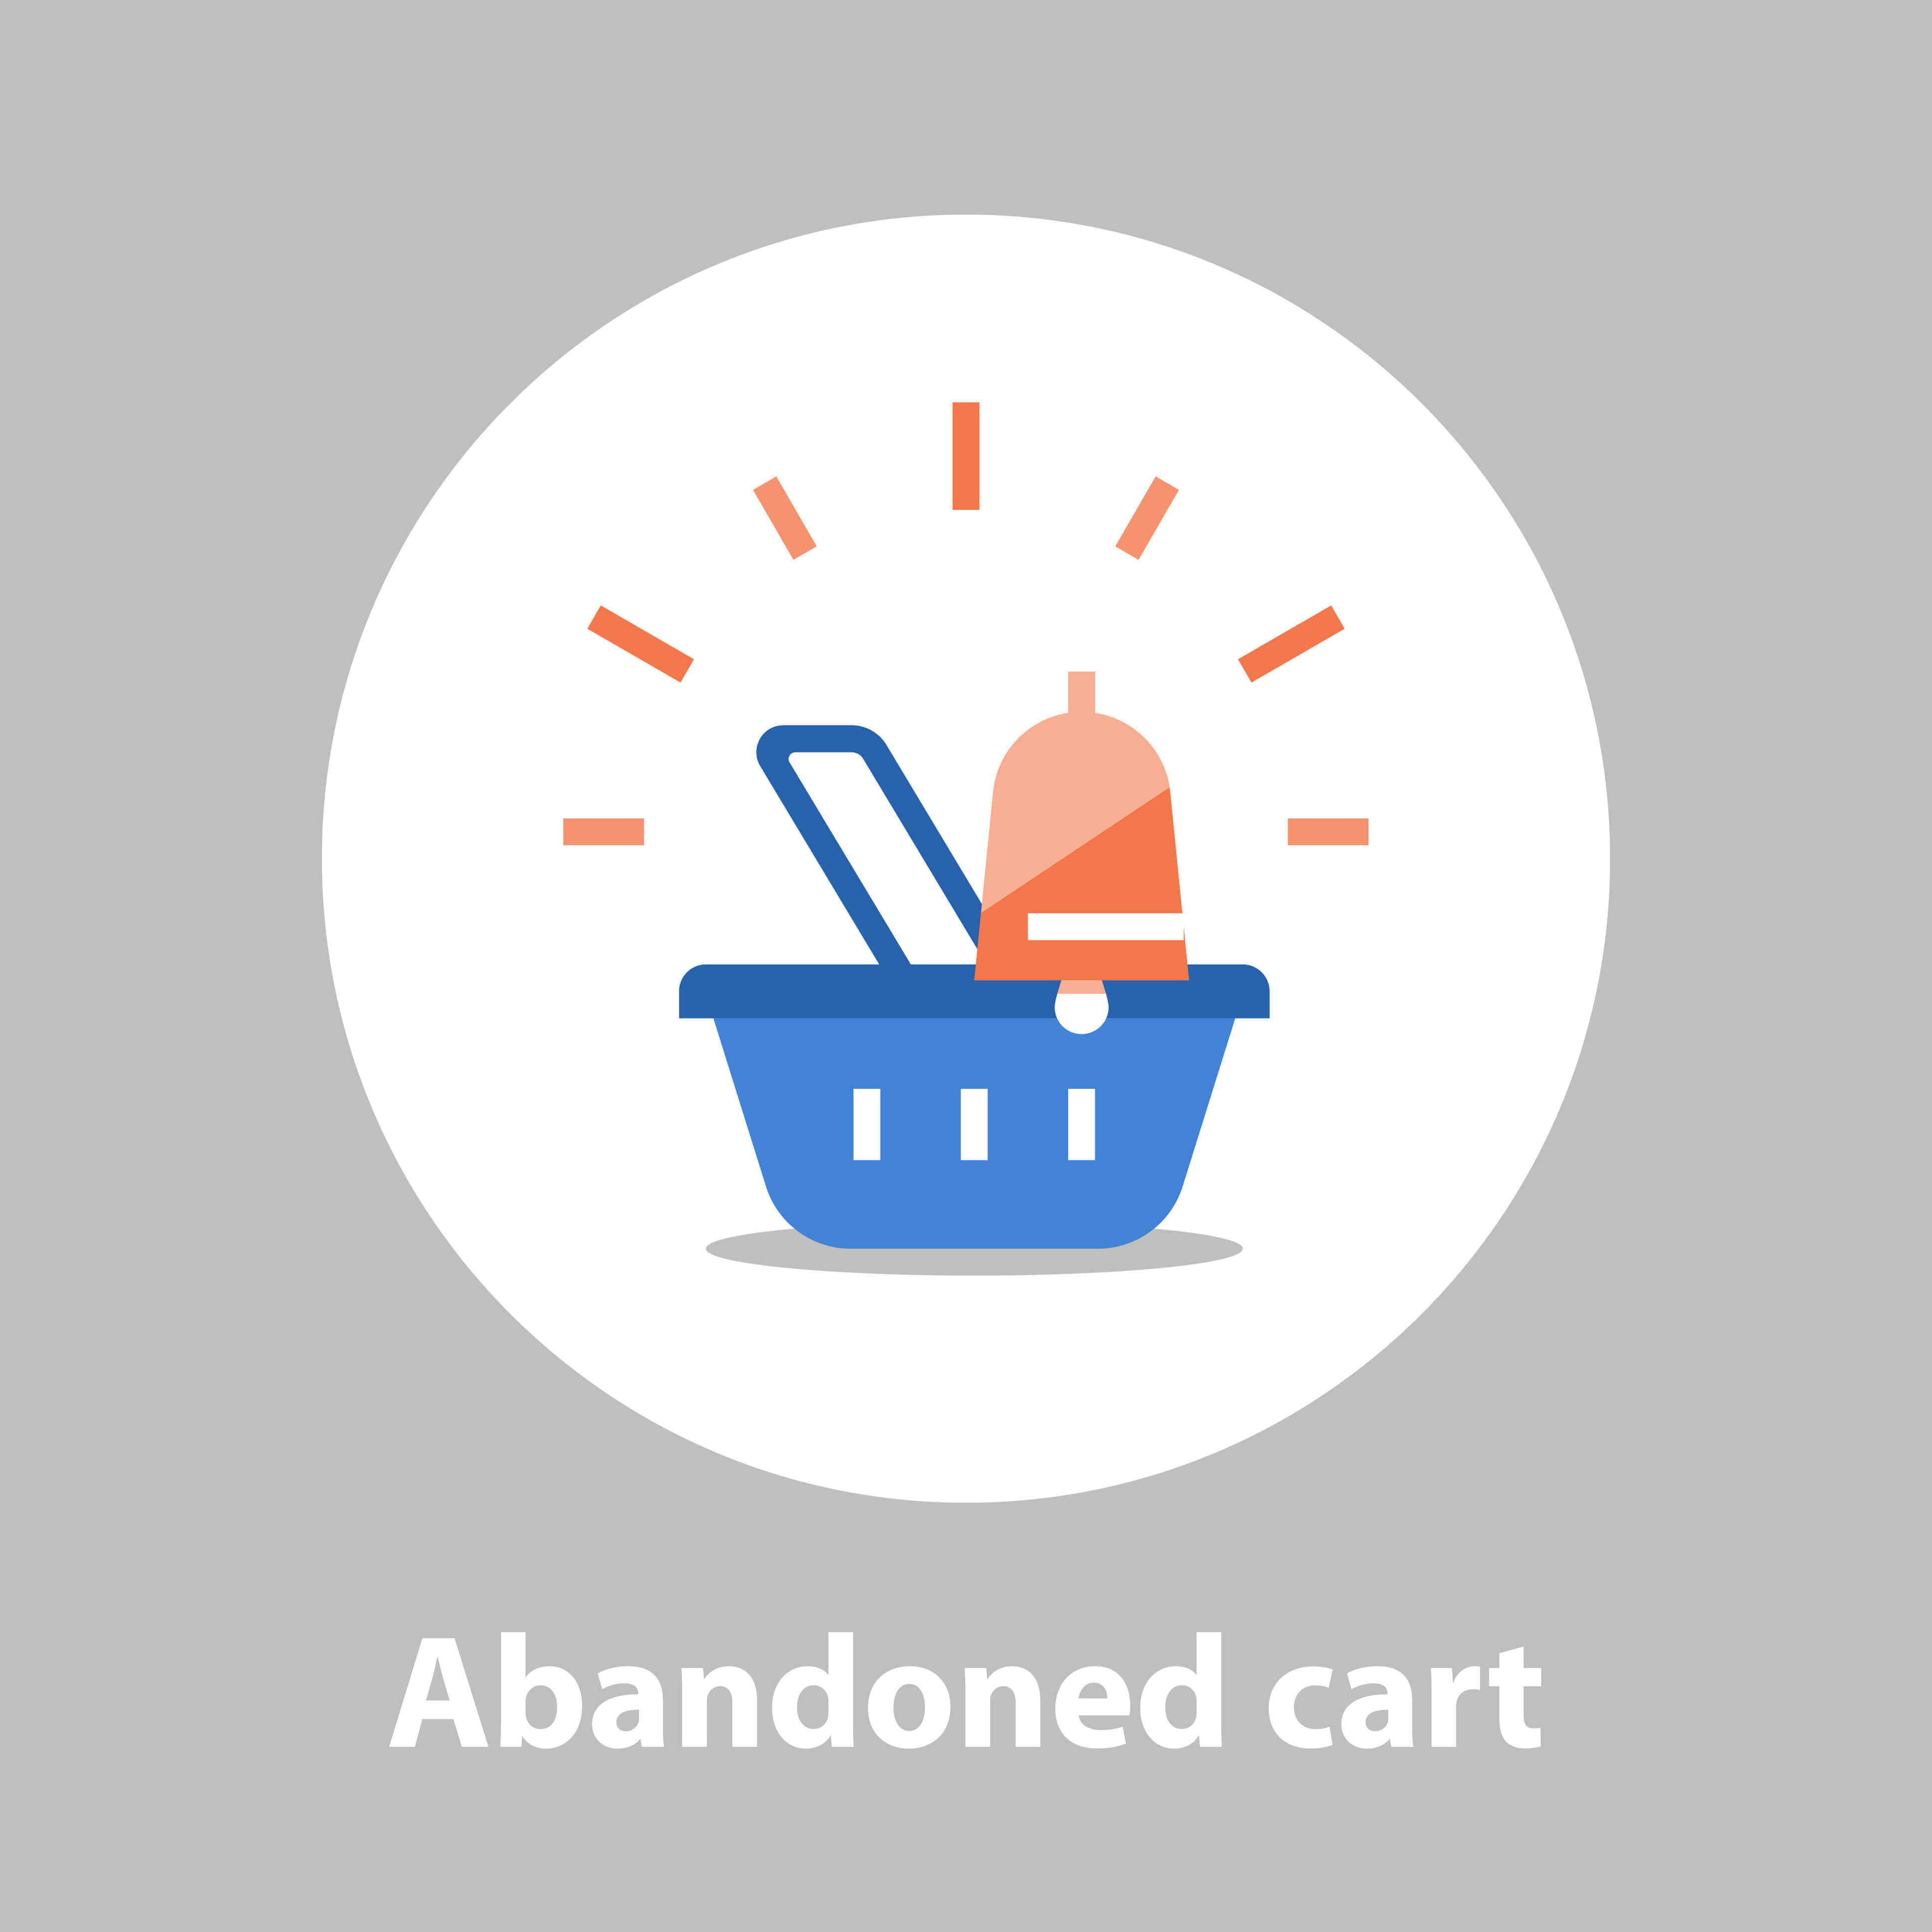 One method of retargeting where an abandoned cart notification is sent to the customer